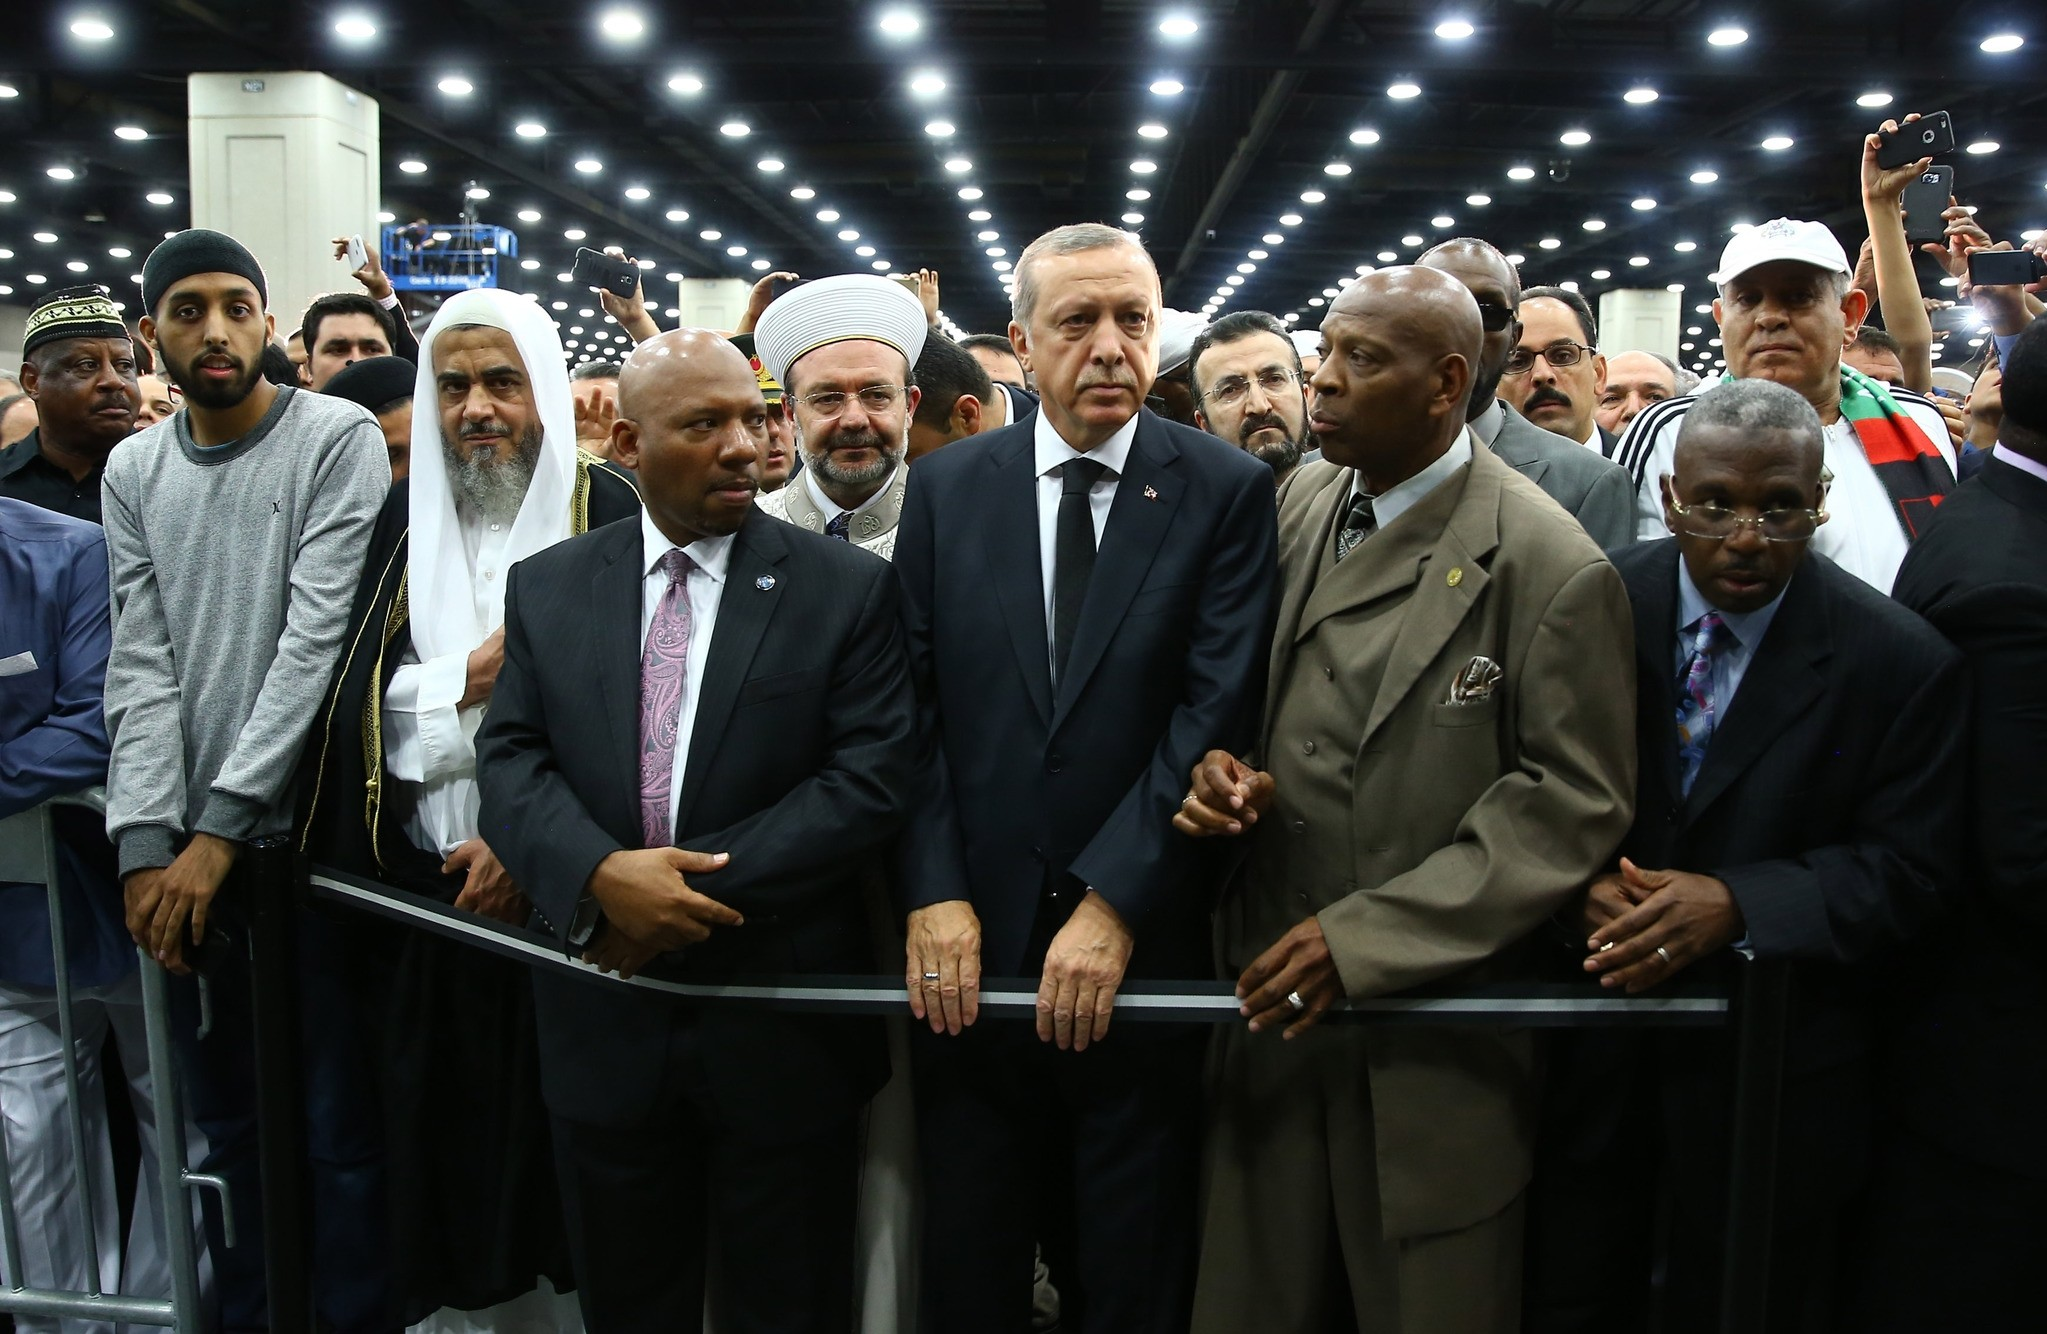 Turkish President Tayyip Erdogan (C) attends the jenazah, an Islamic funeral prayer, for the late boxing champion Muhammad Ali in Louisville, Kentucky, U.S. June 9, 2016. (AA Photo)